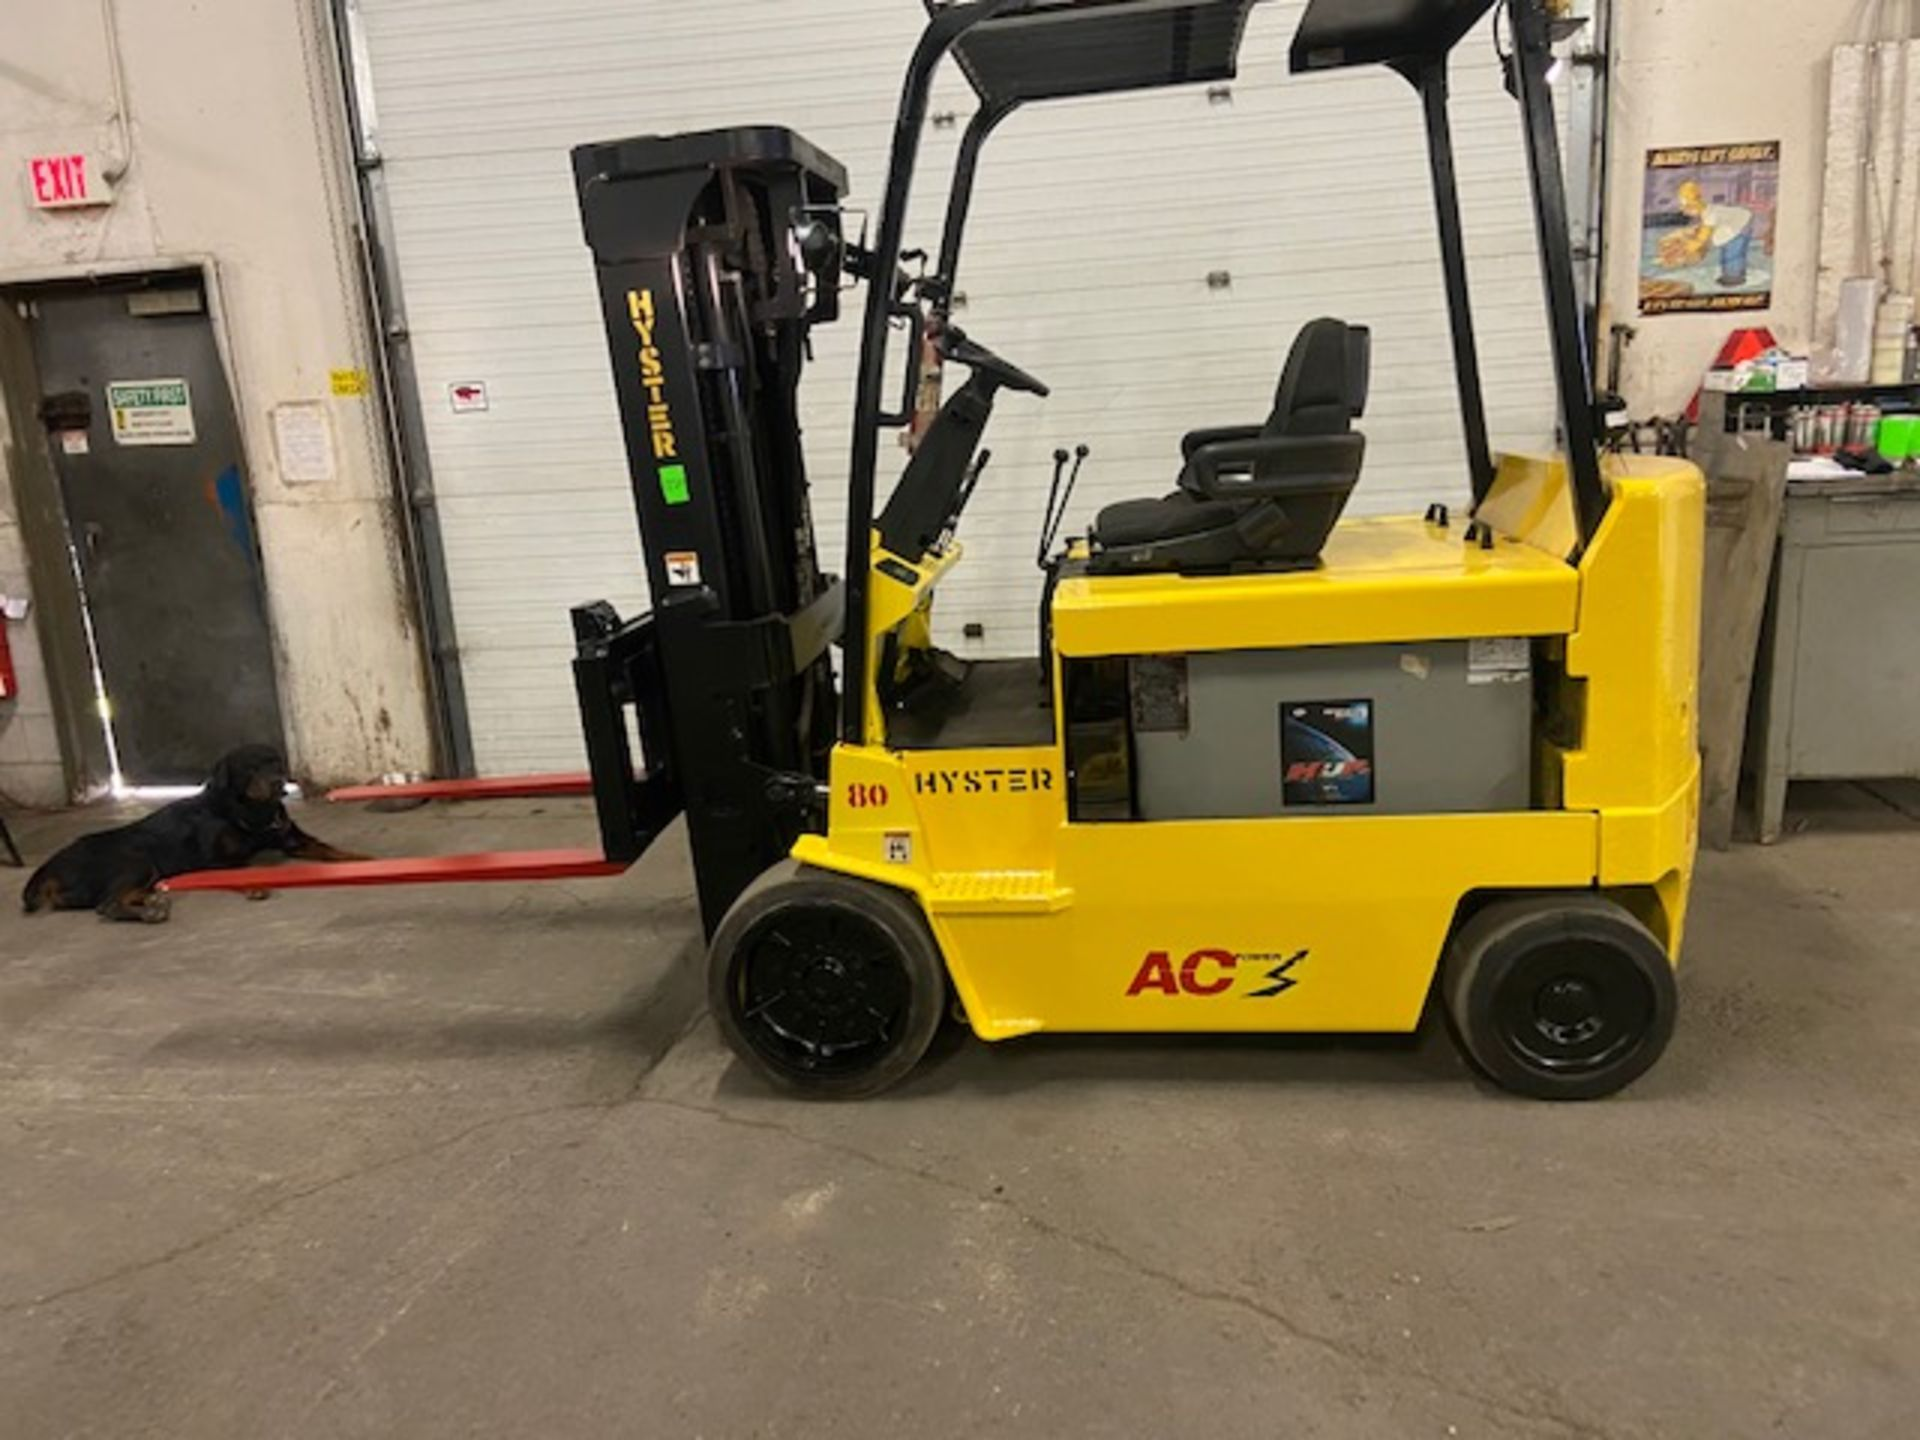 FREE CUSTOMS - 2008 Hyster 8000lbs Capacity Forklift Electric with sideshift and 3 stage mast